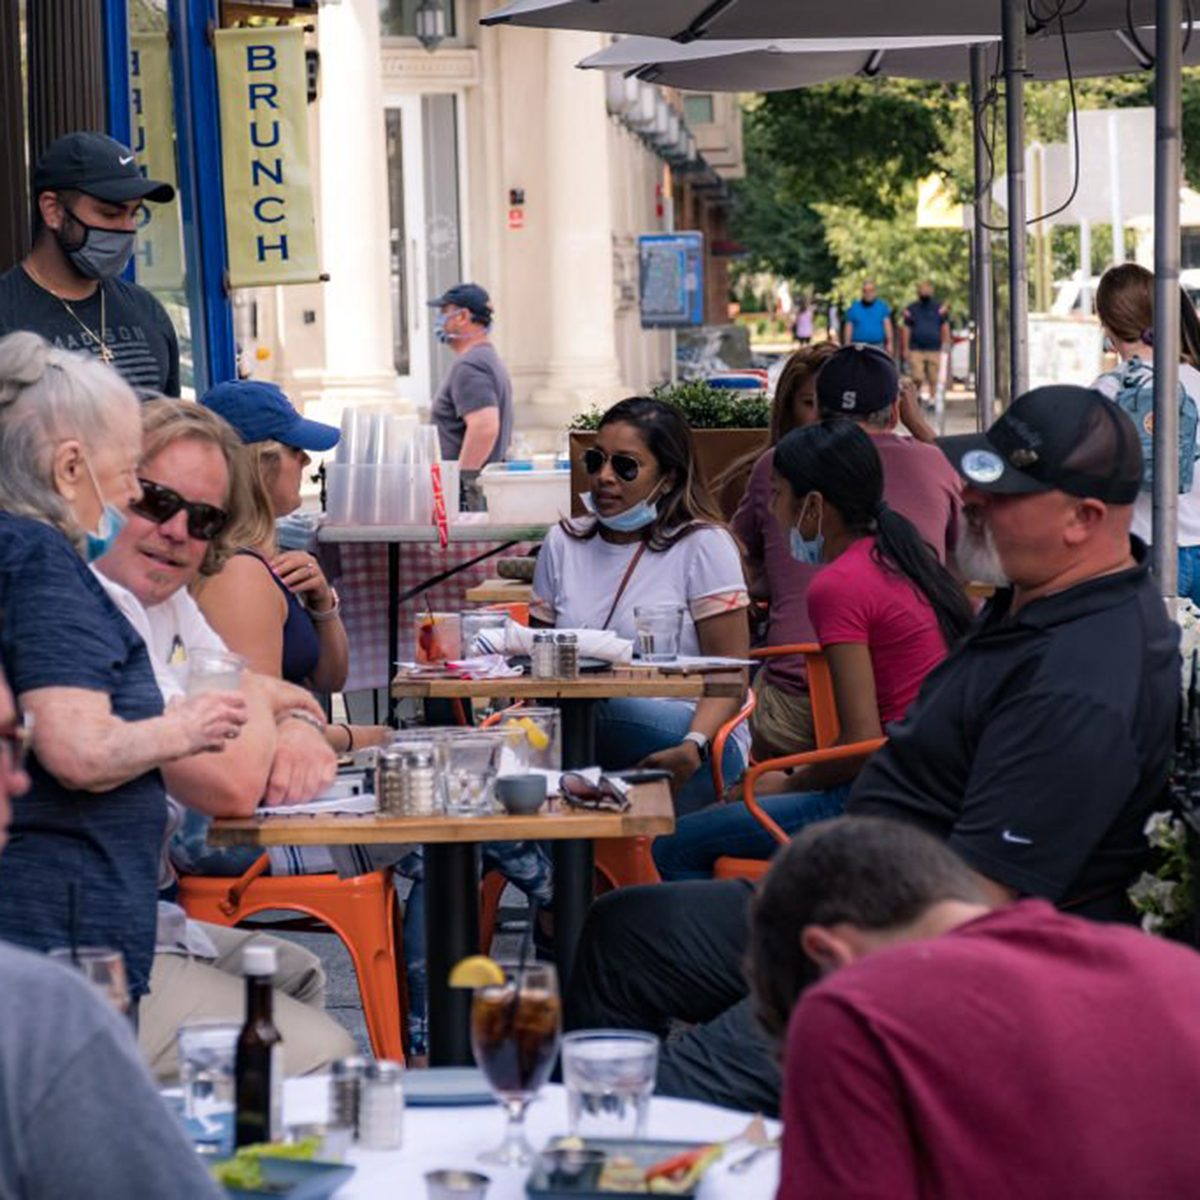 People eating outdoors at a busy restaurant